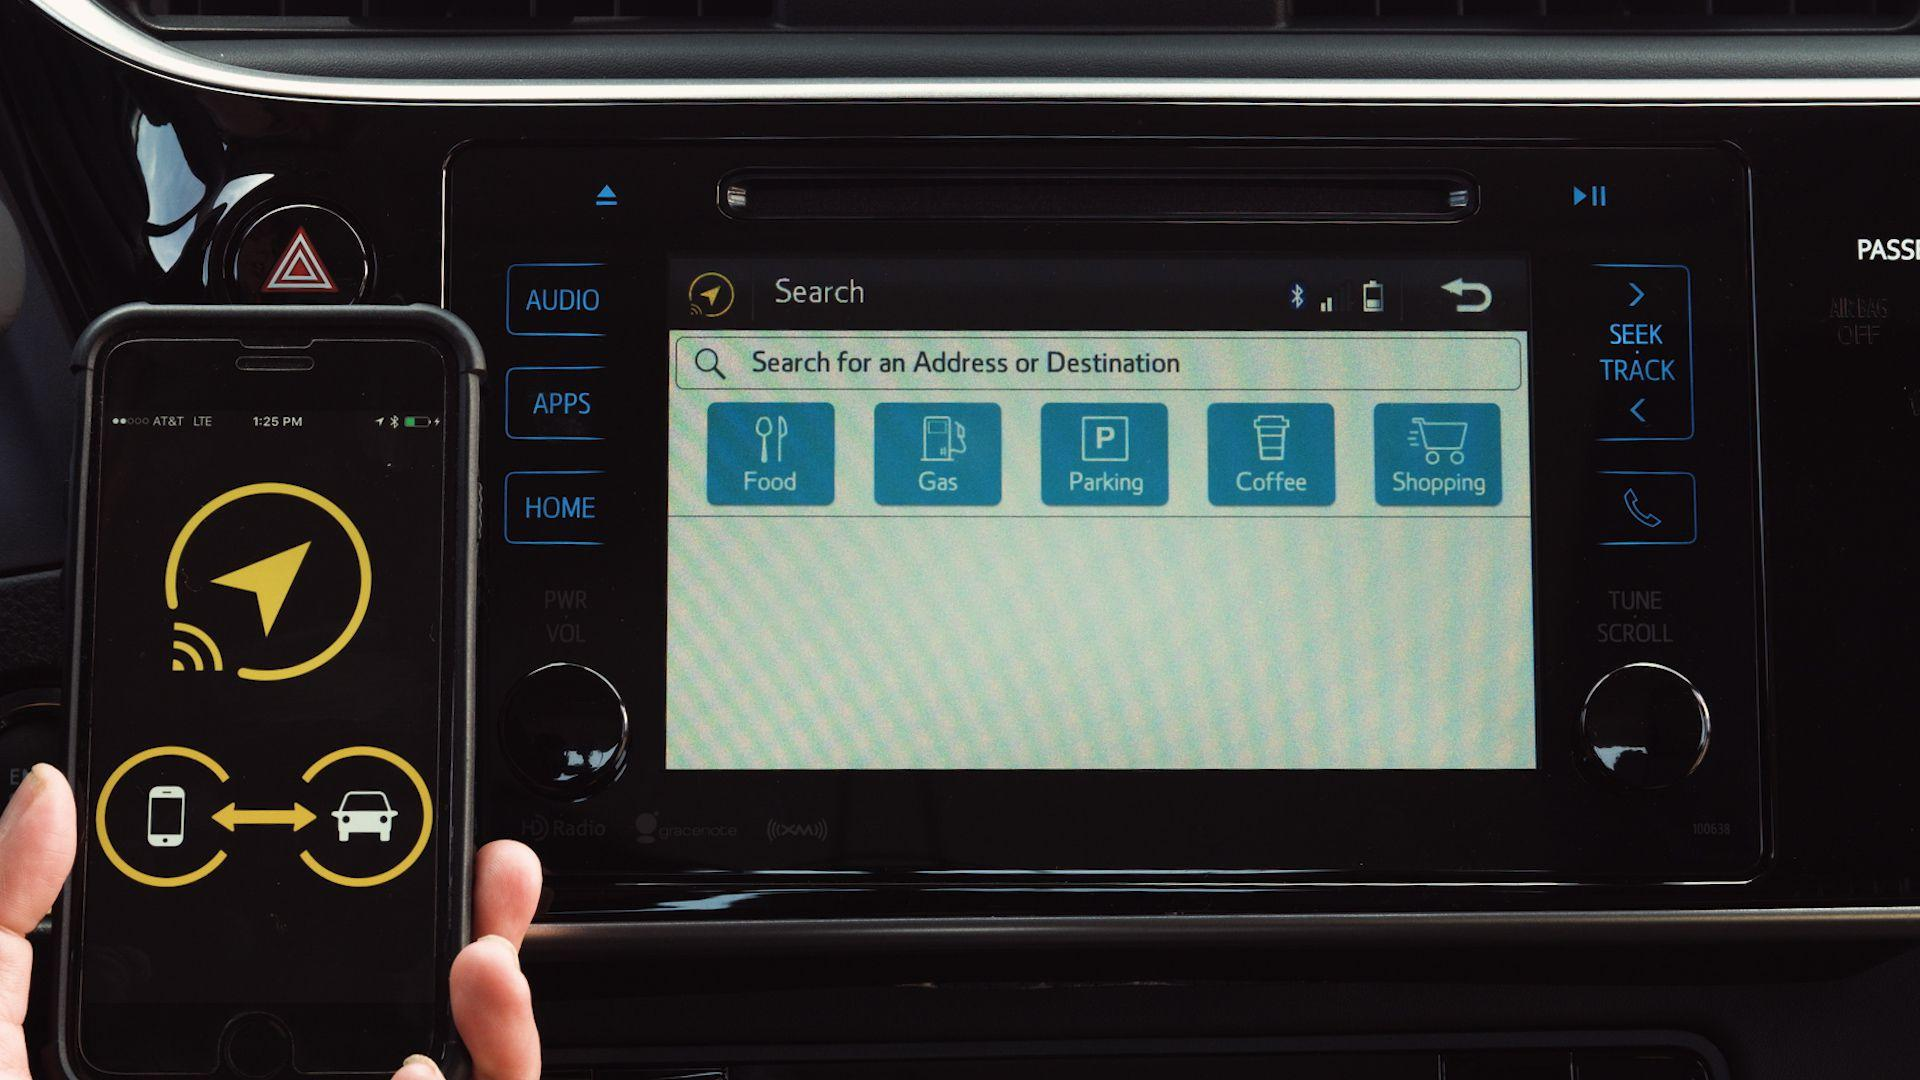 Deep Dive: Looking at Toyota's Entune system